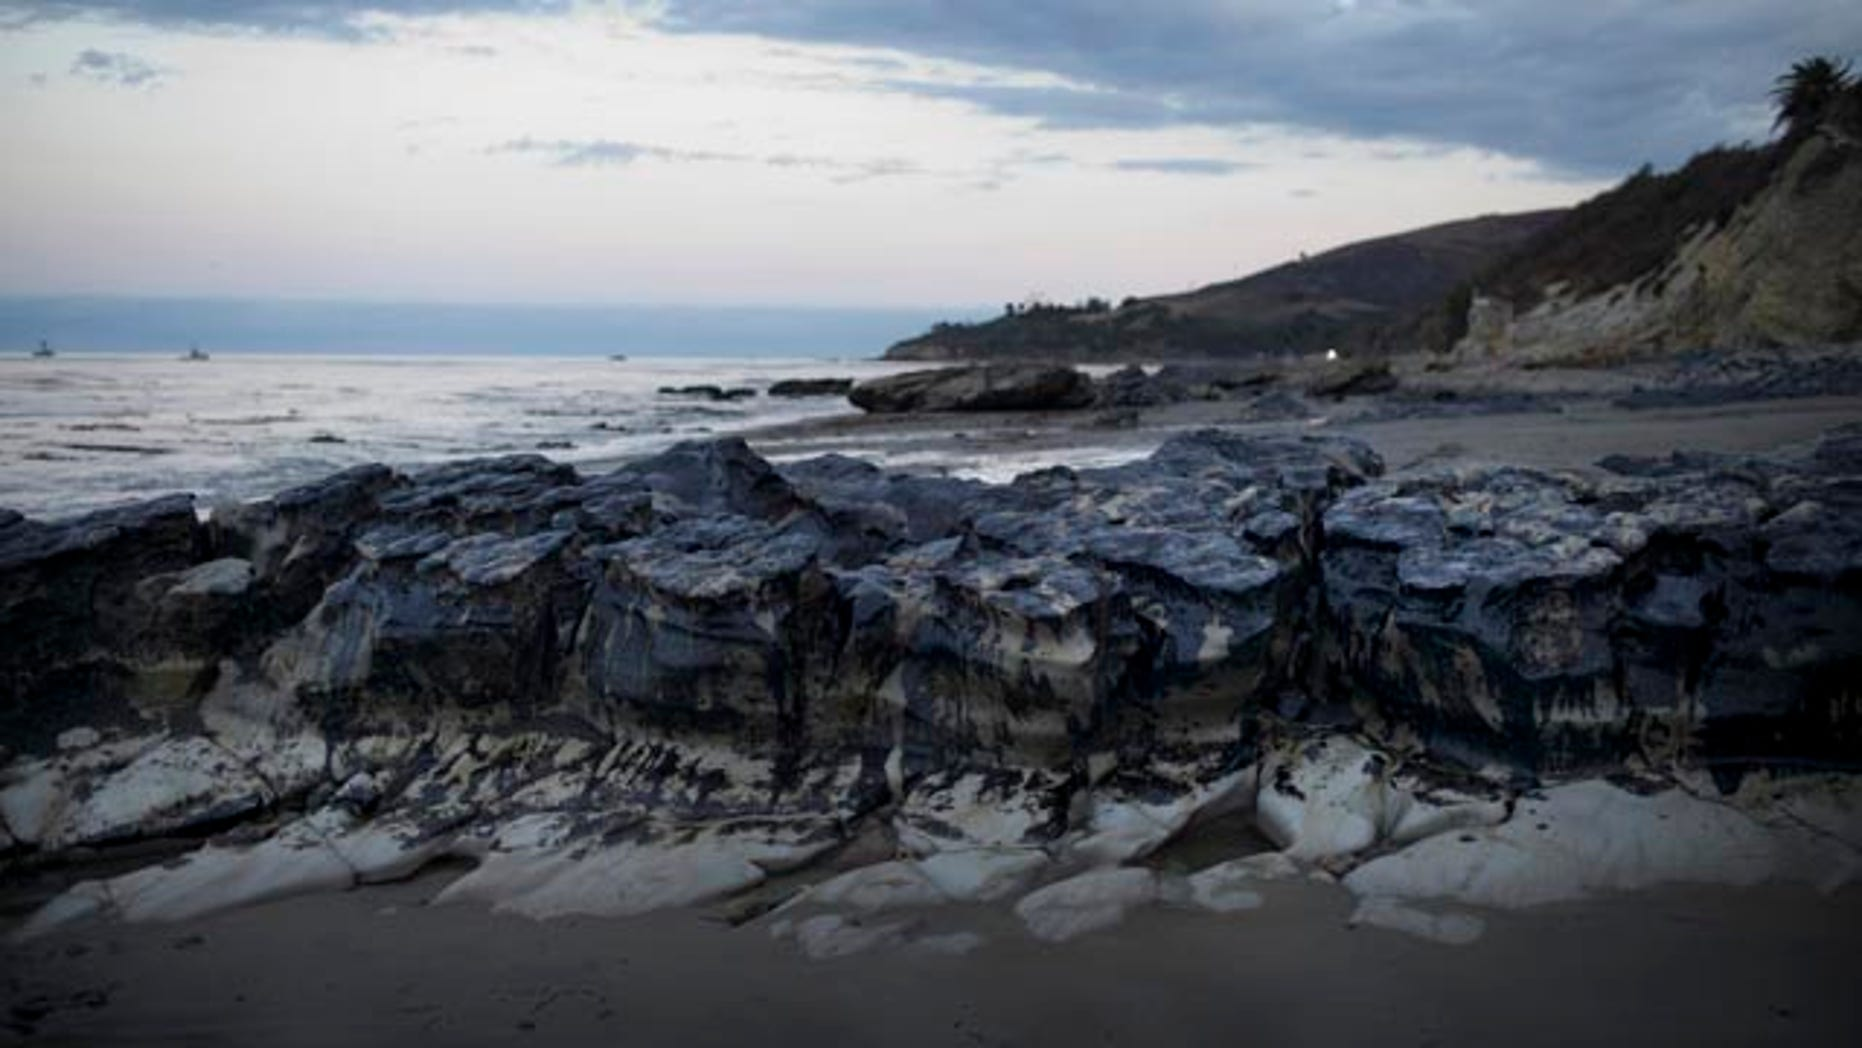 May 21, 2015: Rocks are covered with oil on the beach at Refugio State Beach, north of Goleta, Calif. (AP Photo/Jae C. Hong)